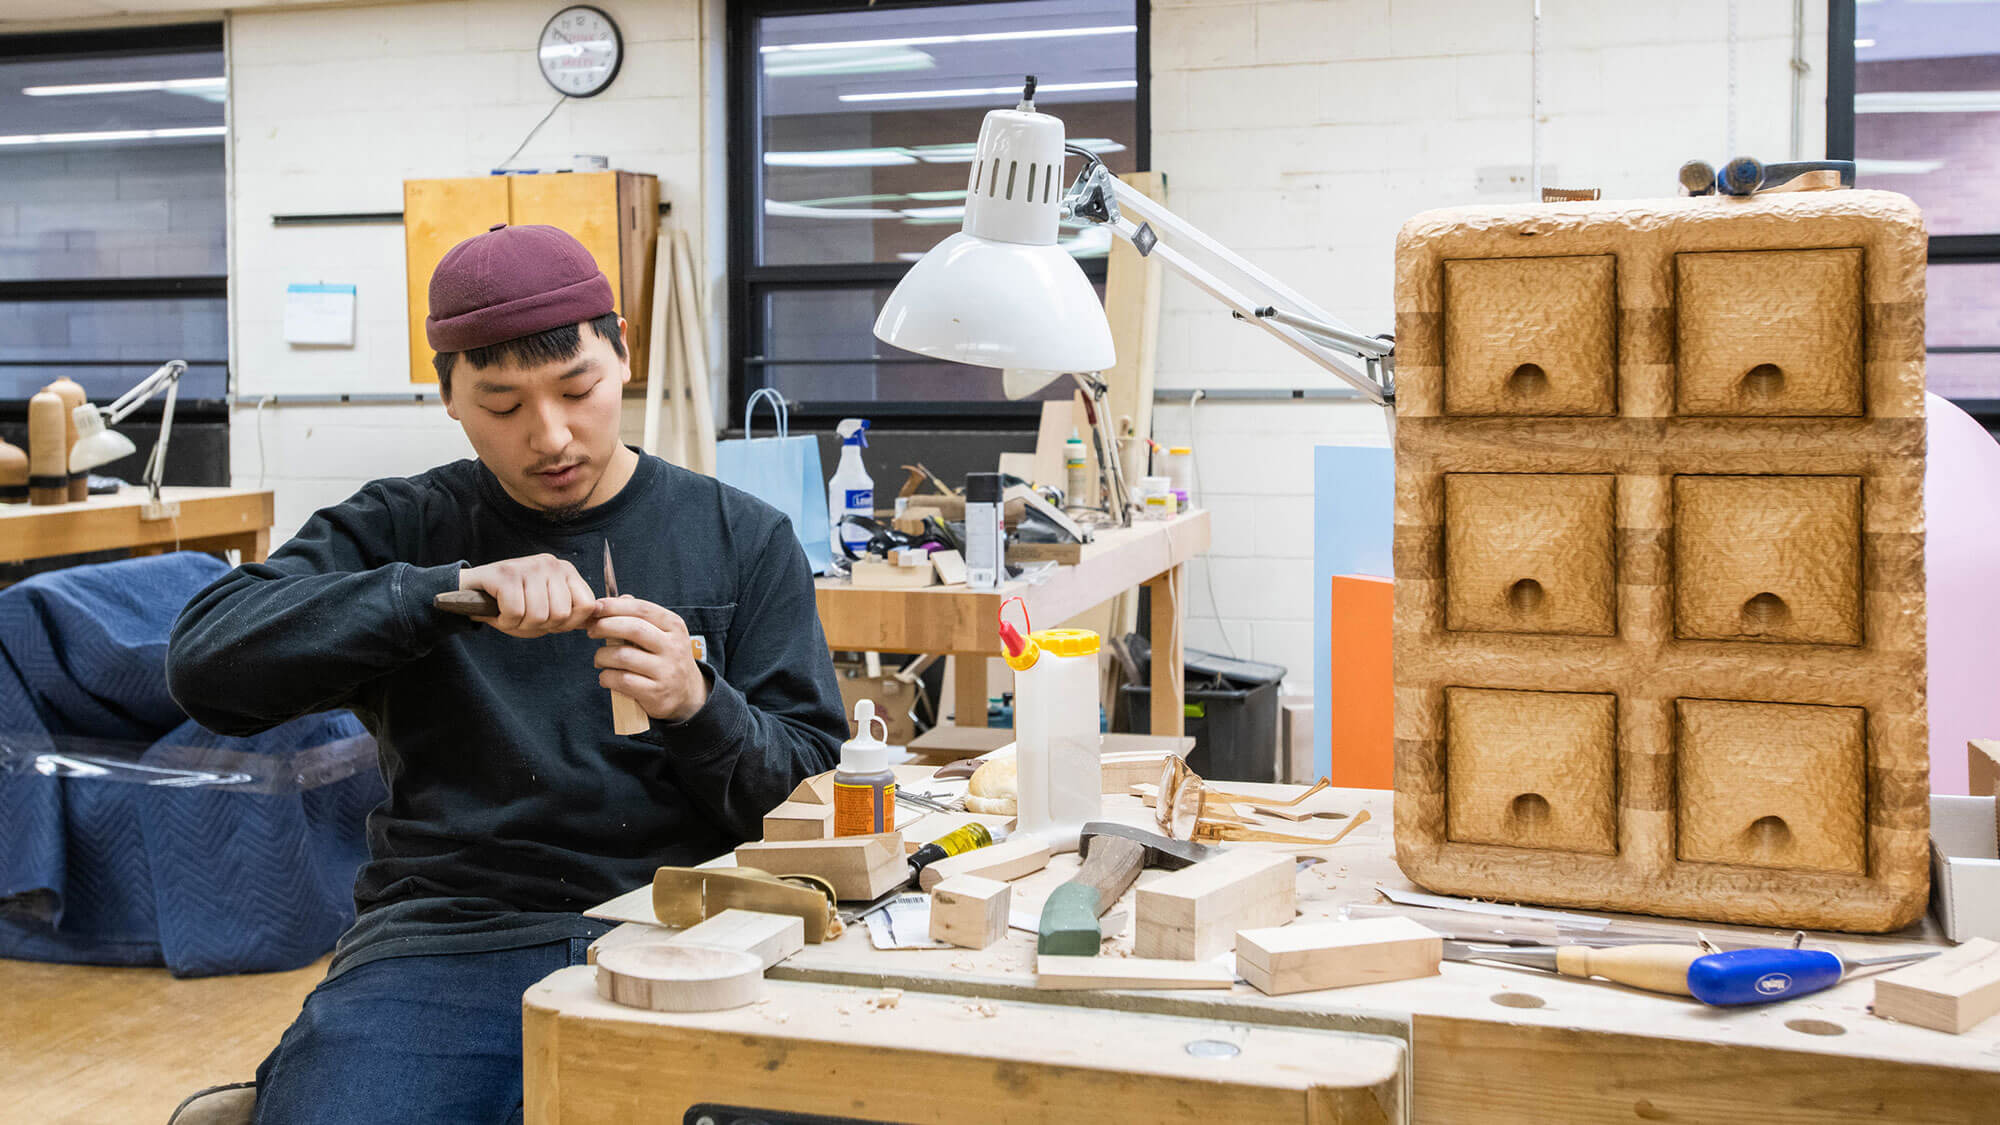 A furniture design student works on a project in one of the program's studios.